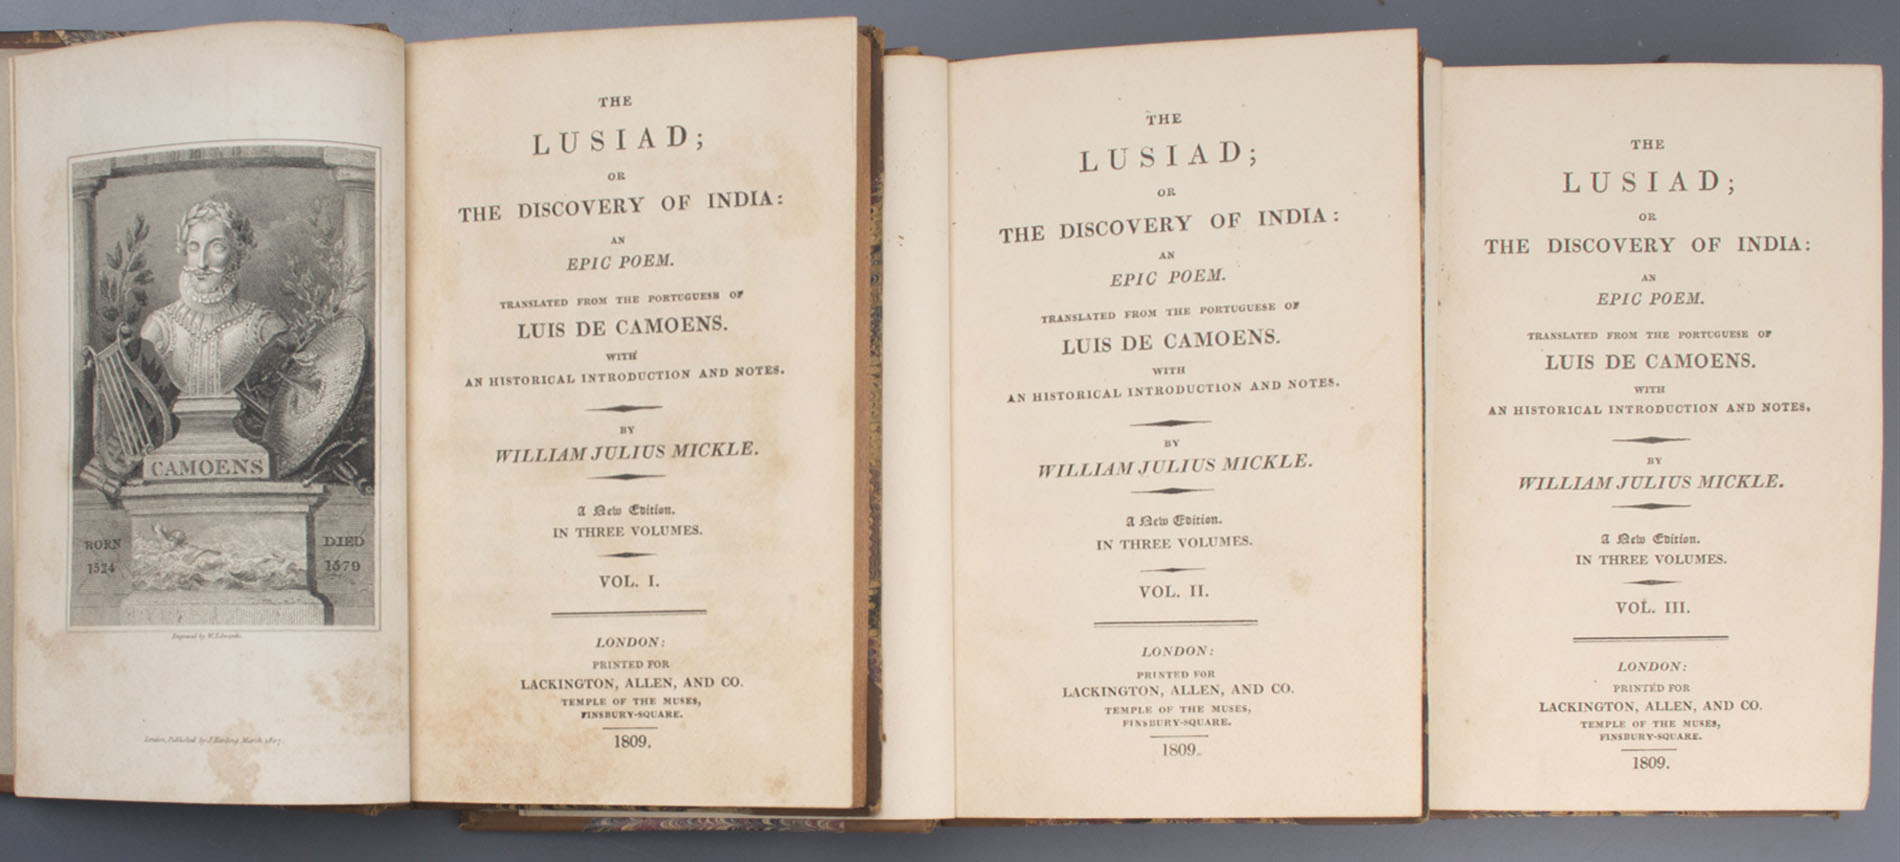 The Lusiad or The Discovery of India